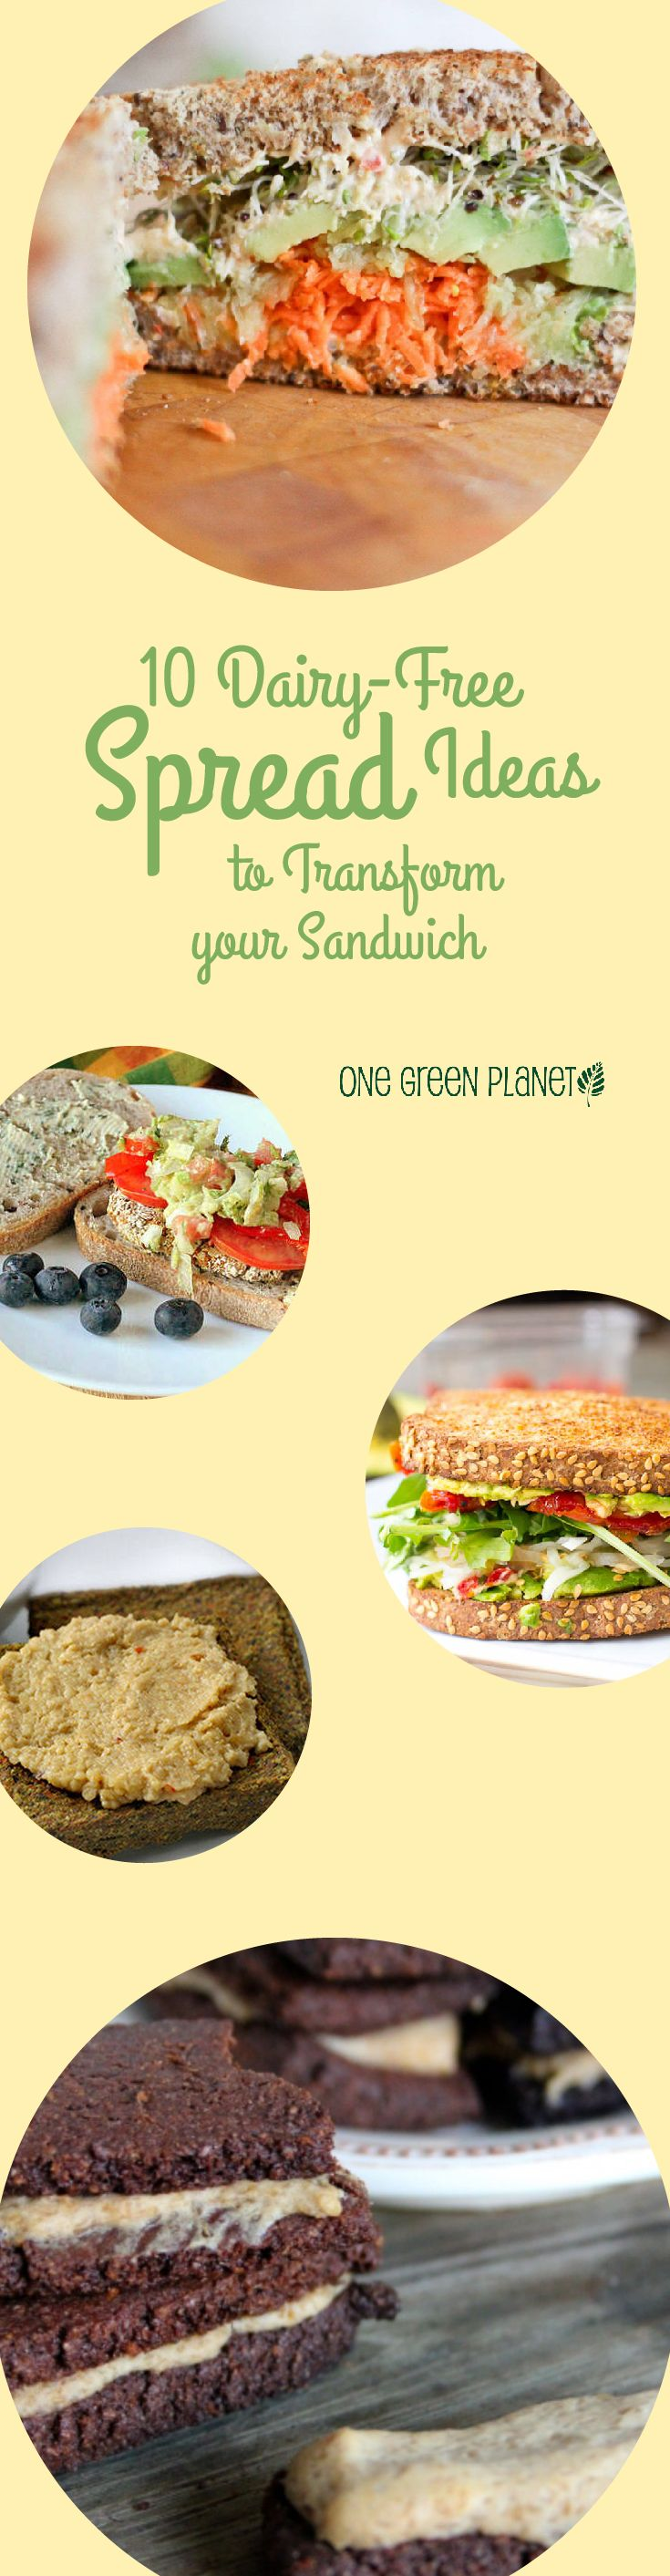 http://onegr.pl/13xNTkb #vegan #vegetarian #dairyfree #spreads #sandwich #lunch #recipes